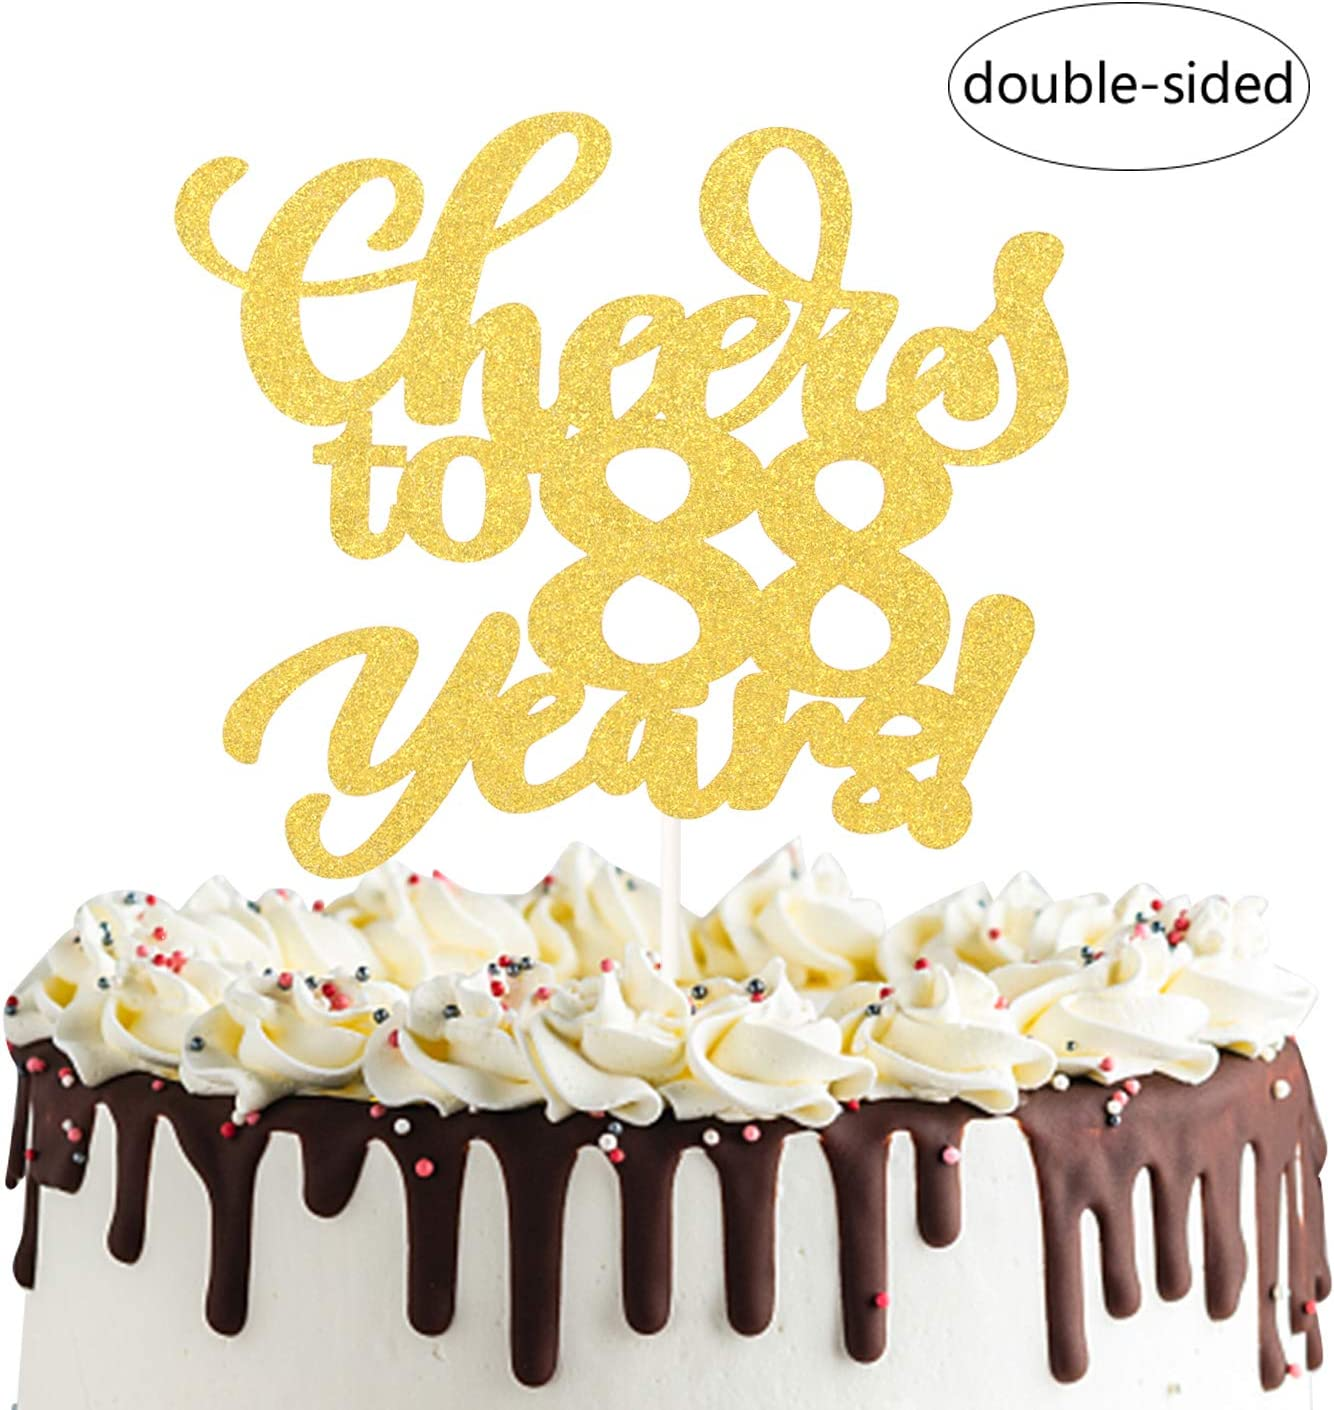 Cheers to 15 Years Old Cake Decor 15th Birthday//Anniversary Party Decoration Supplies Gold Glitter Happy 15th Birthday Cake Topper